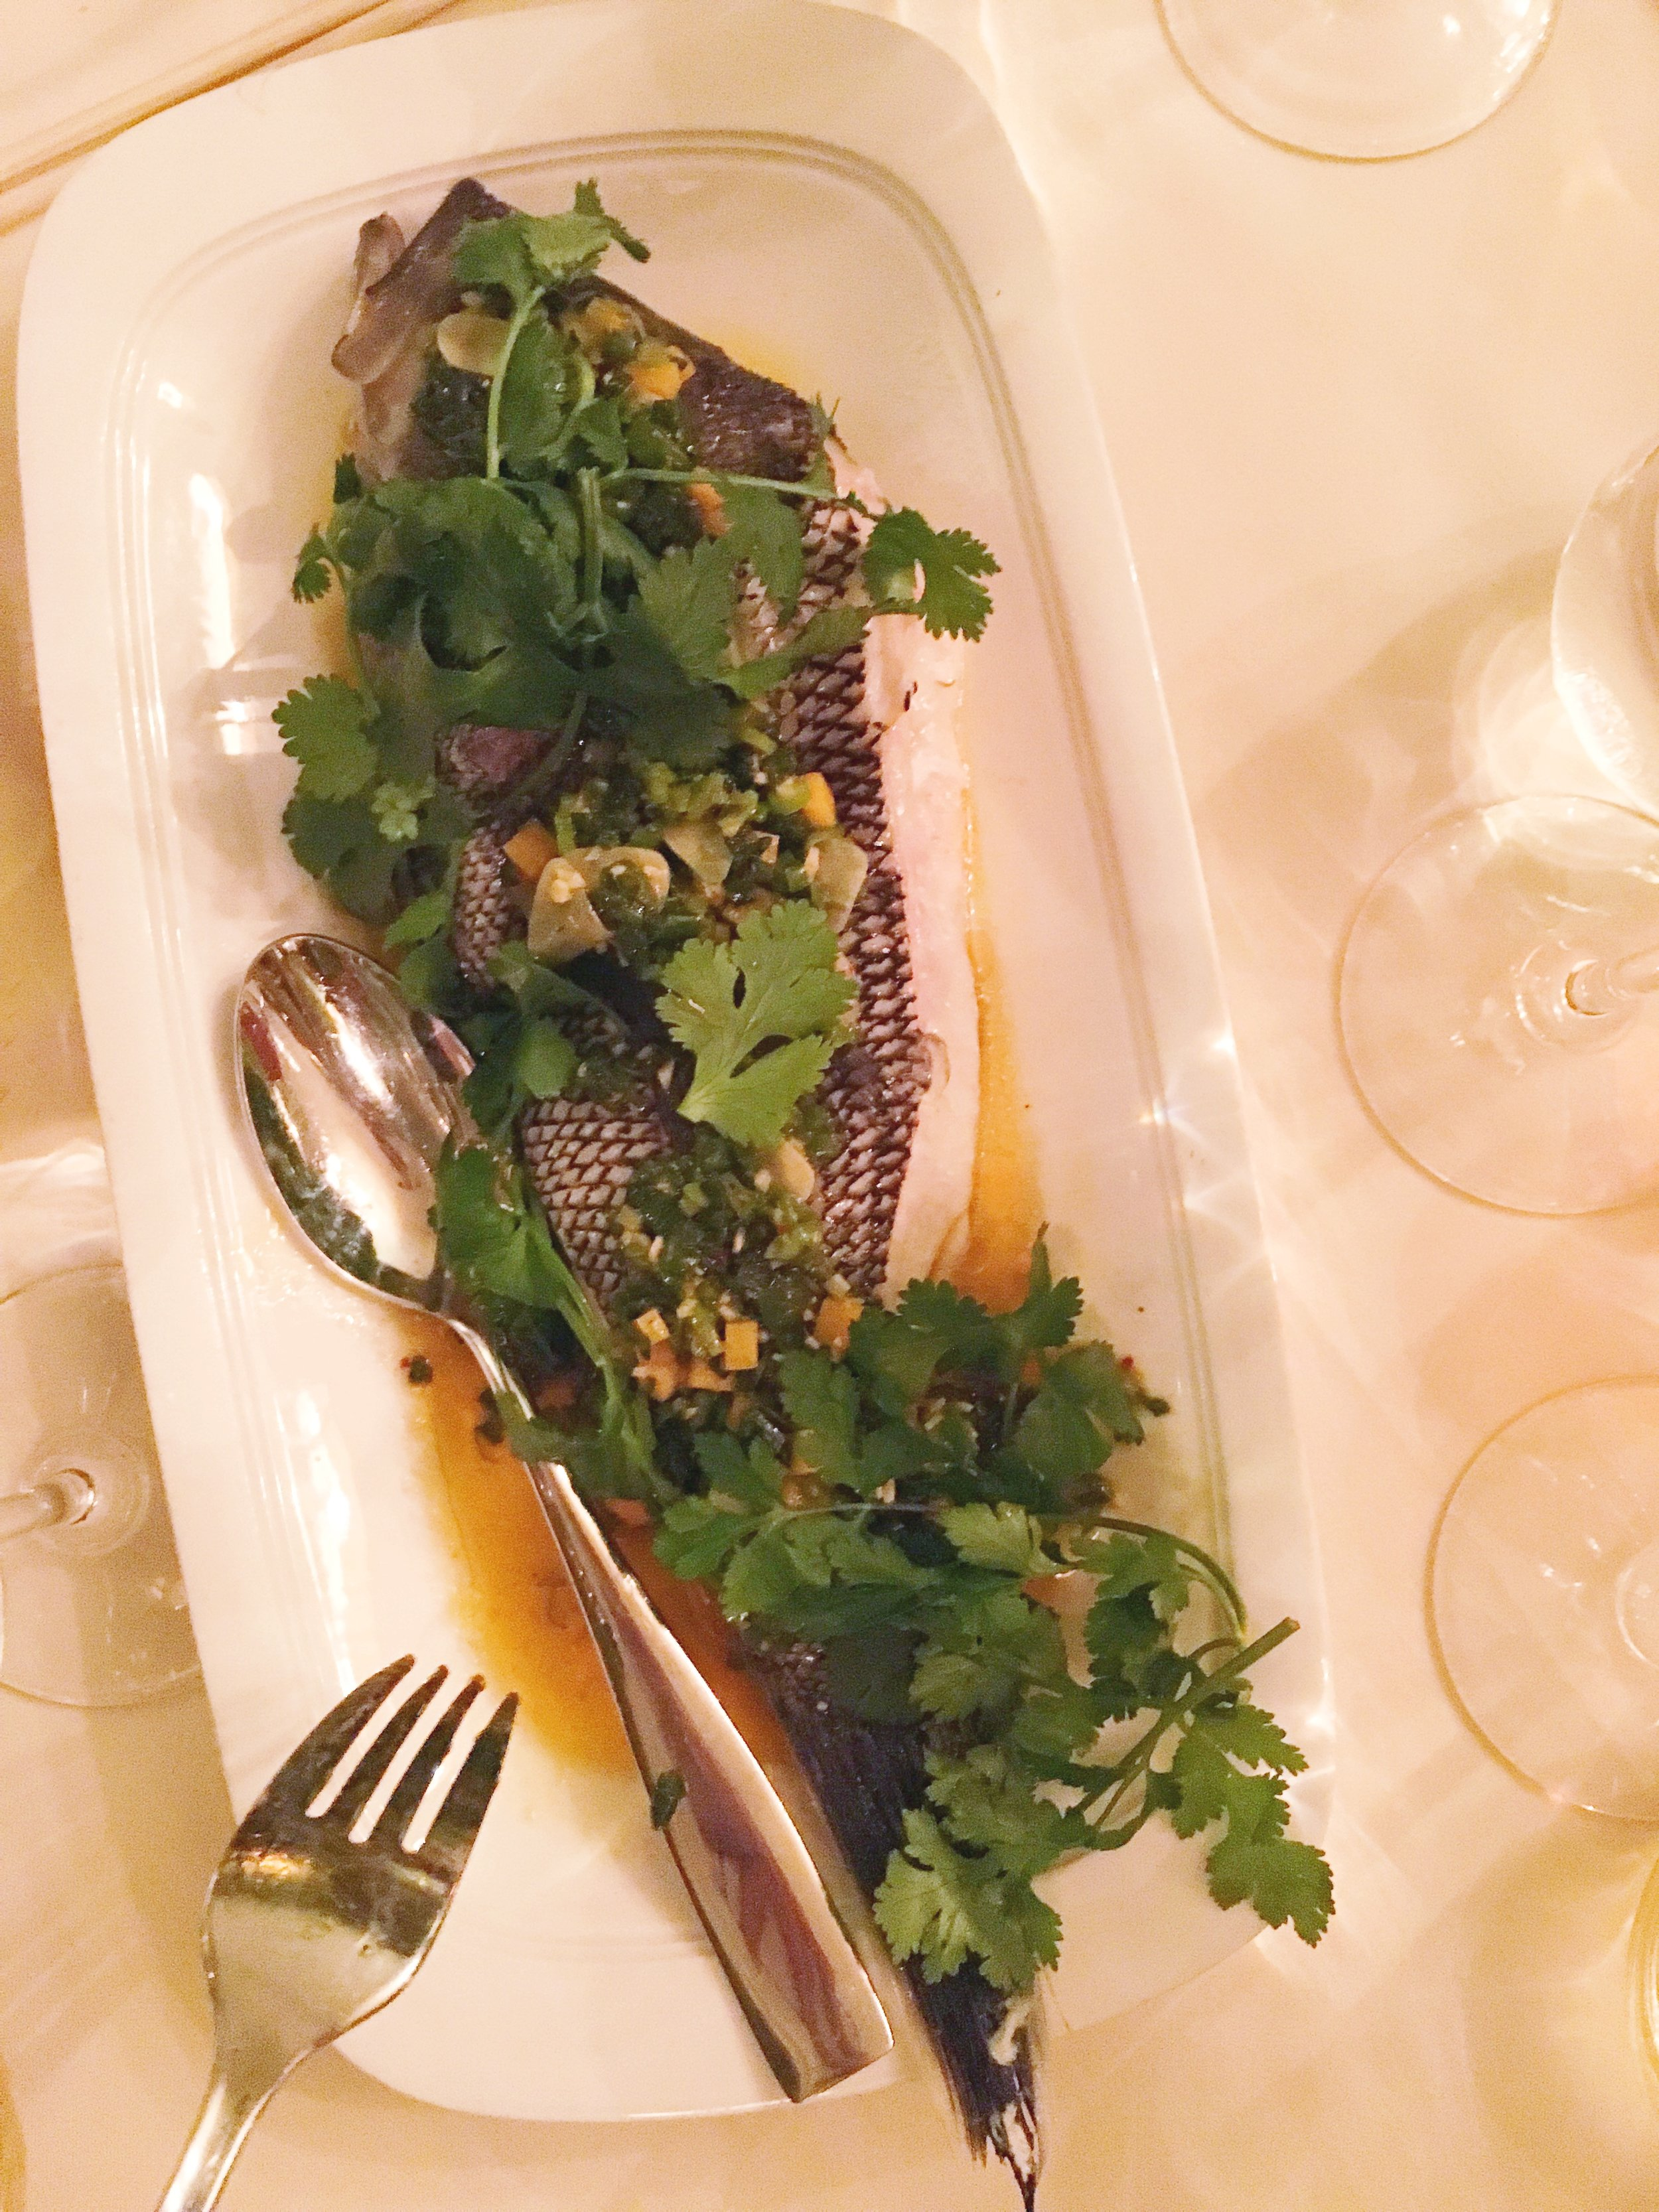 James's phenomenal Whole Black Bass with Kabocha Squash, Ginger and Scallion Sauce and Preserved Green Strawberries.